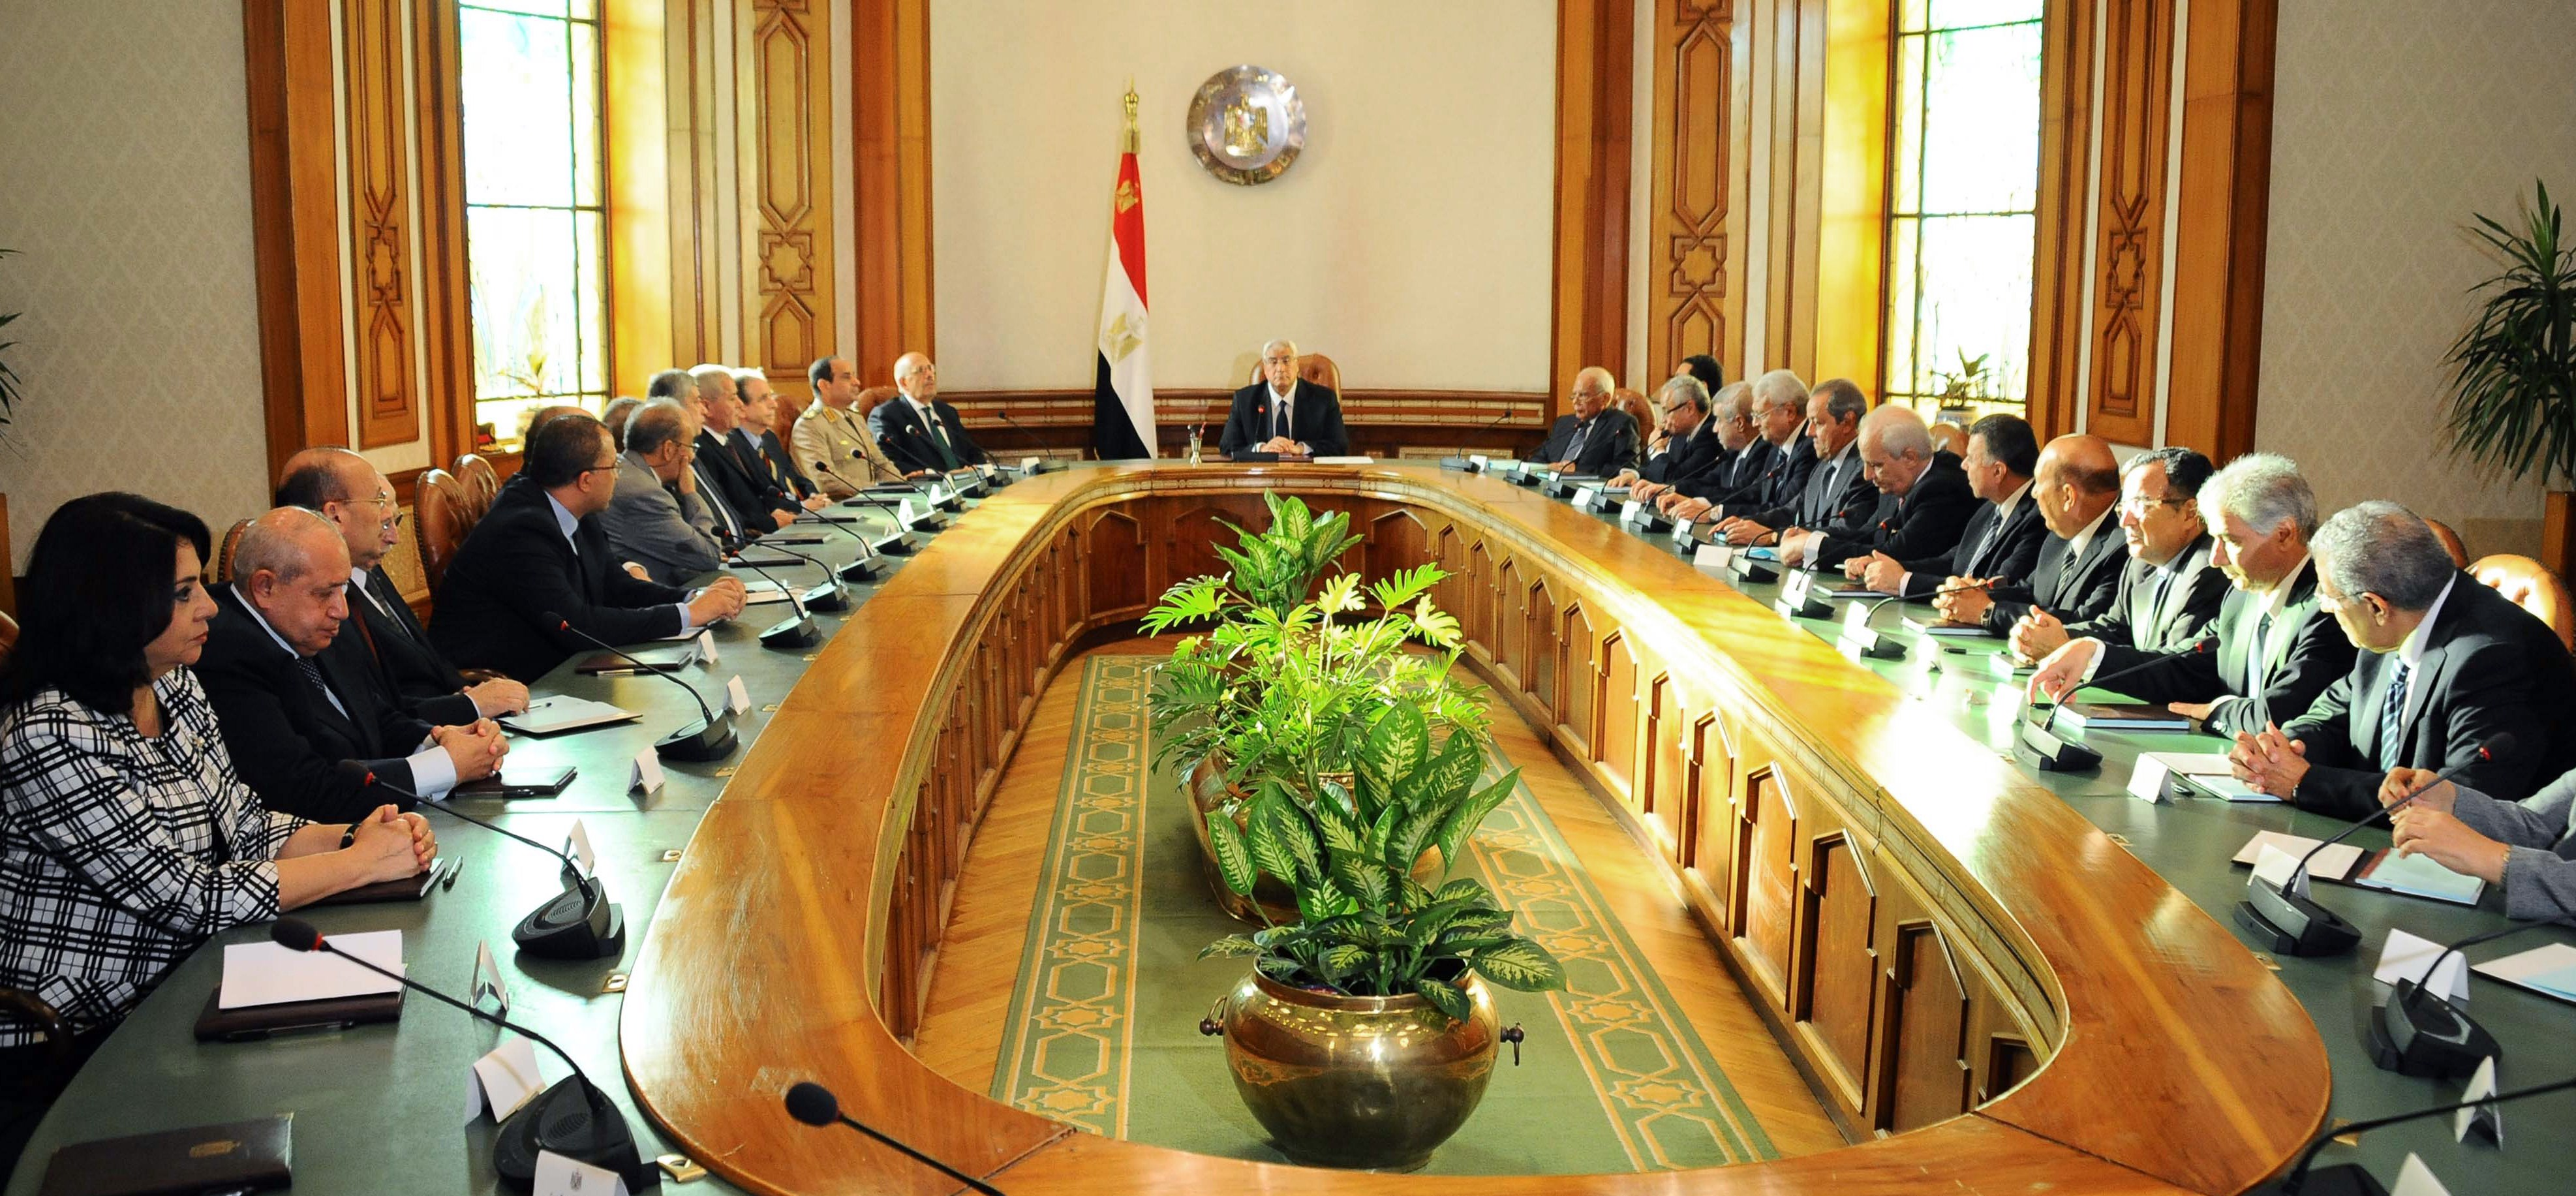 A handout picture released by the Egyptian Presidency shows Egypt's interim president Adly Mansour (C) heading a meeting with Egypt's newly sworn in interim cabinet on July 16, 2013 in Cairo.  (AFP PHOTO/HO/EGYPTIAN PRESIDENCY)